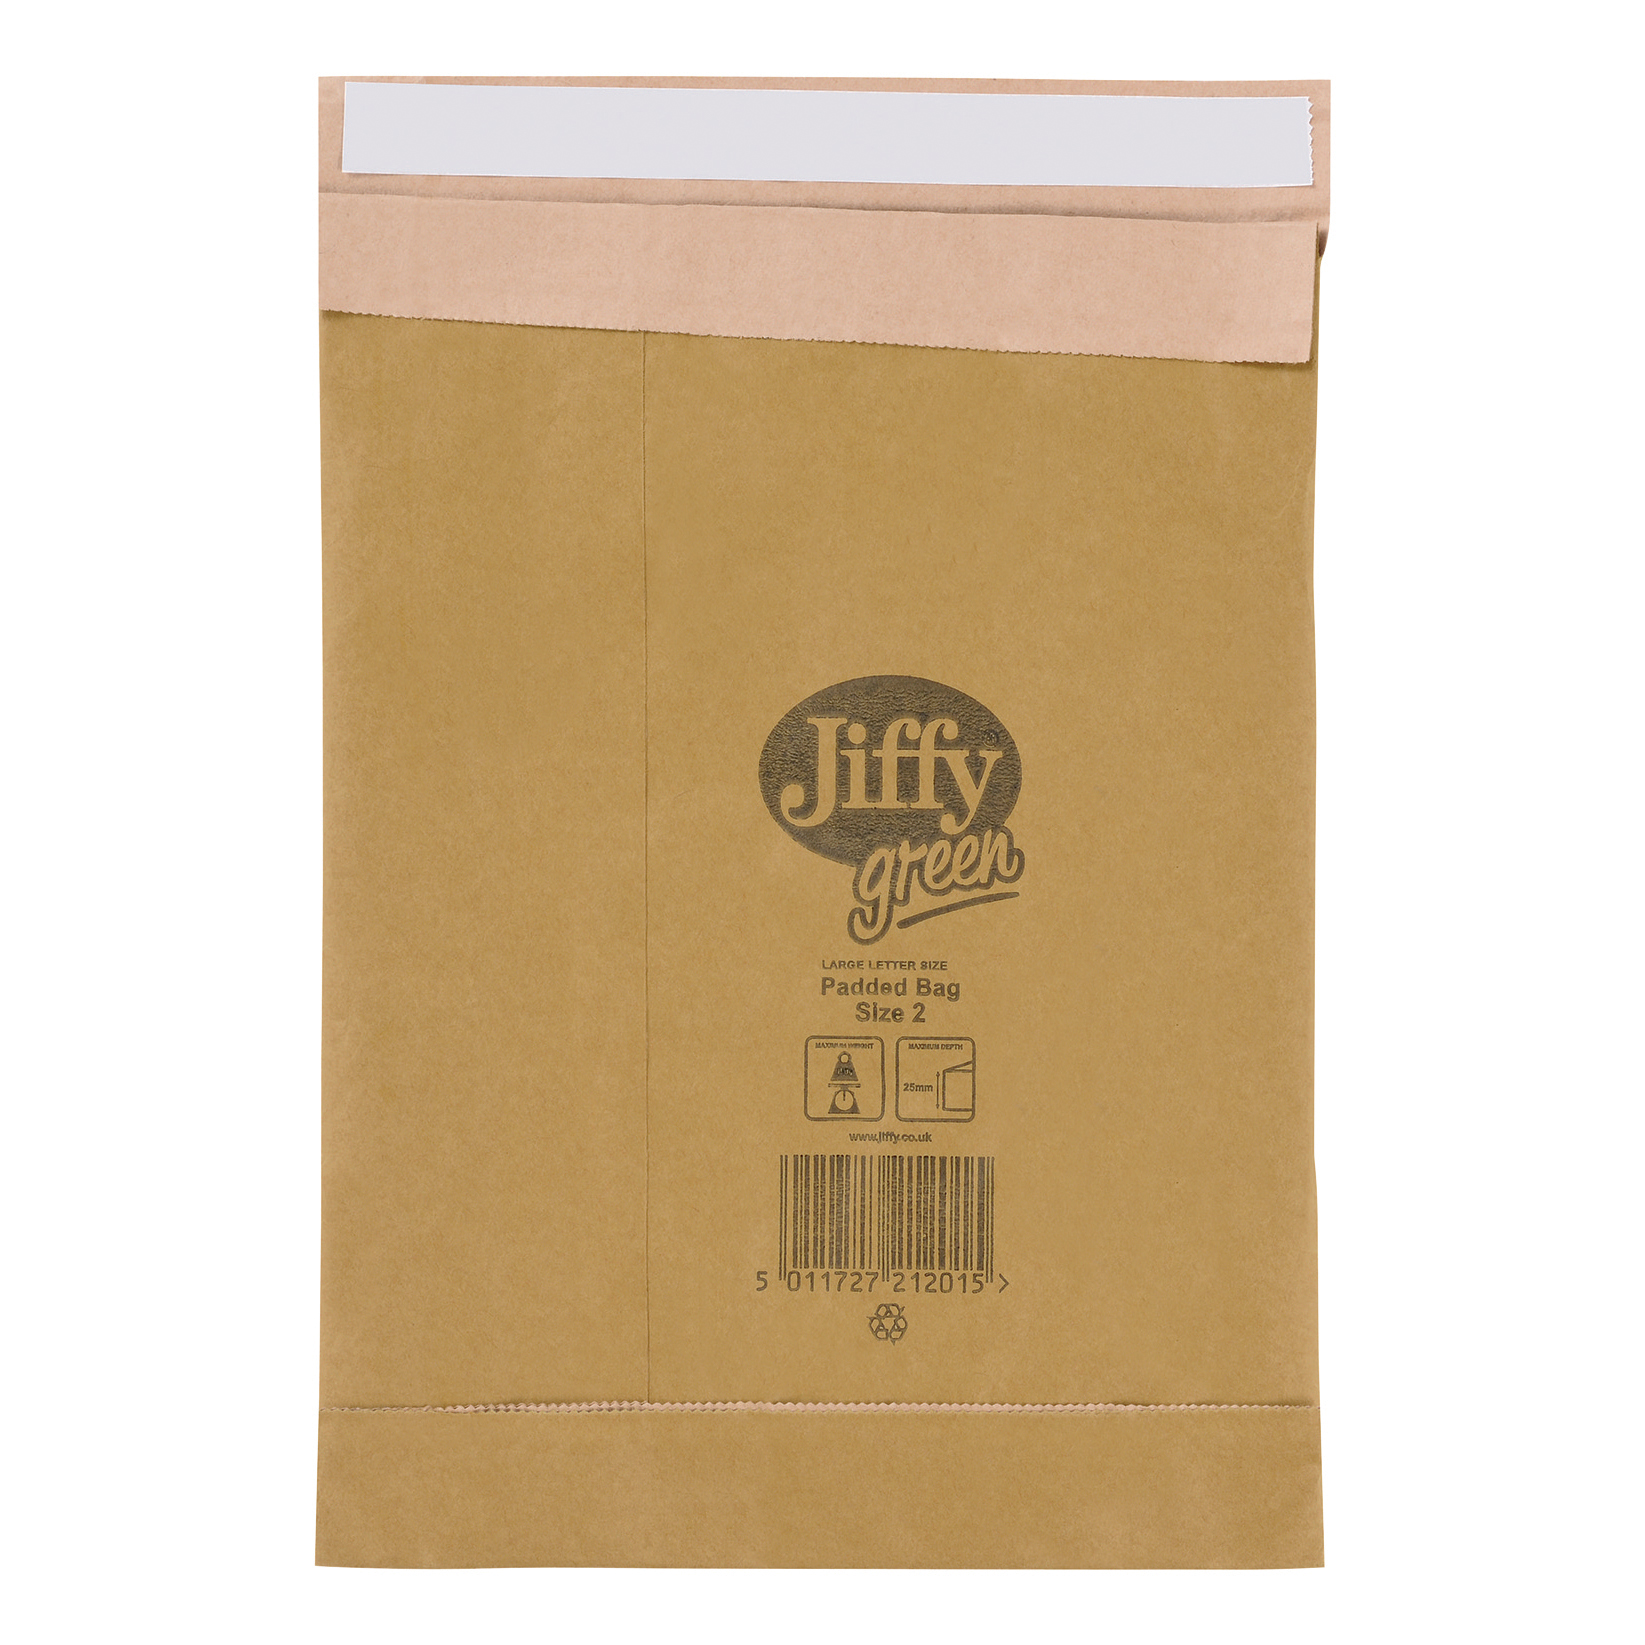 Padded Bags & Envelopes Jiffy Padded Bag Envelopes Size 2 195x280mm Brown Ref JPB-2 Pack 100